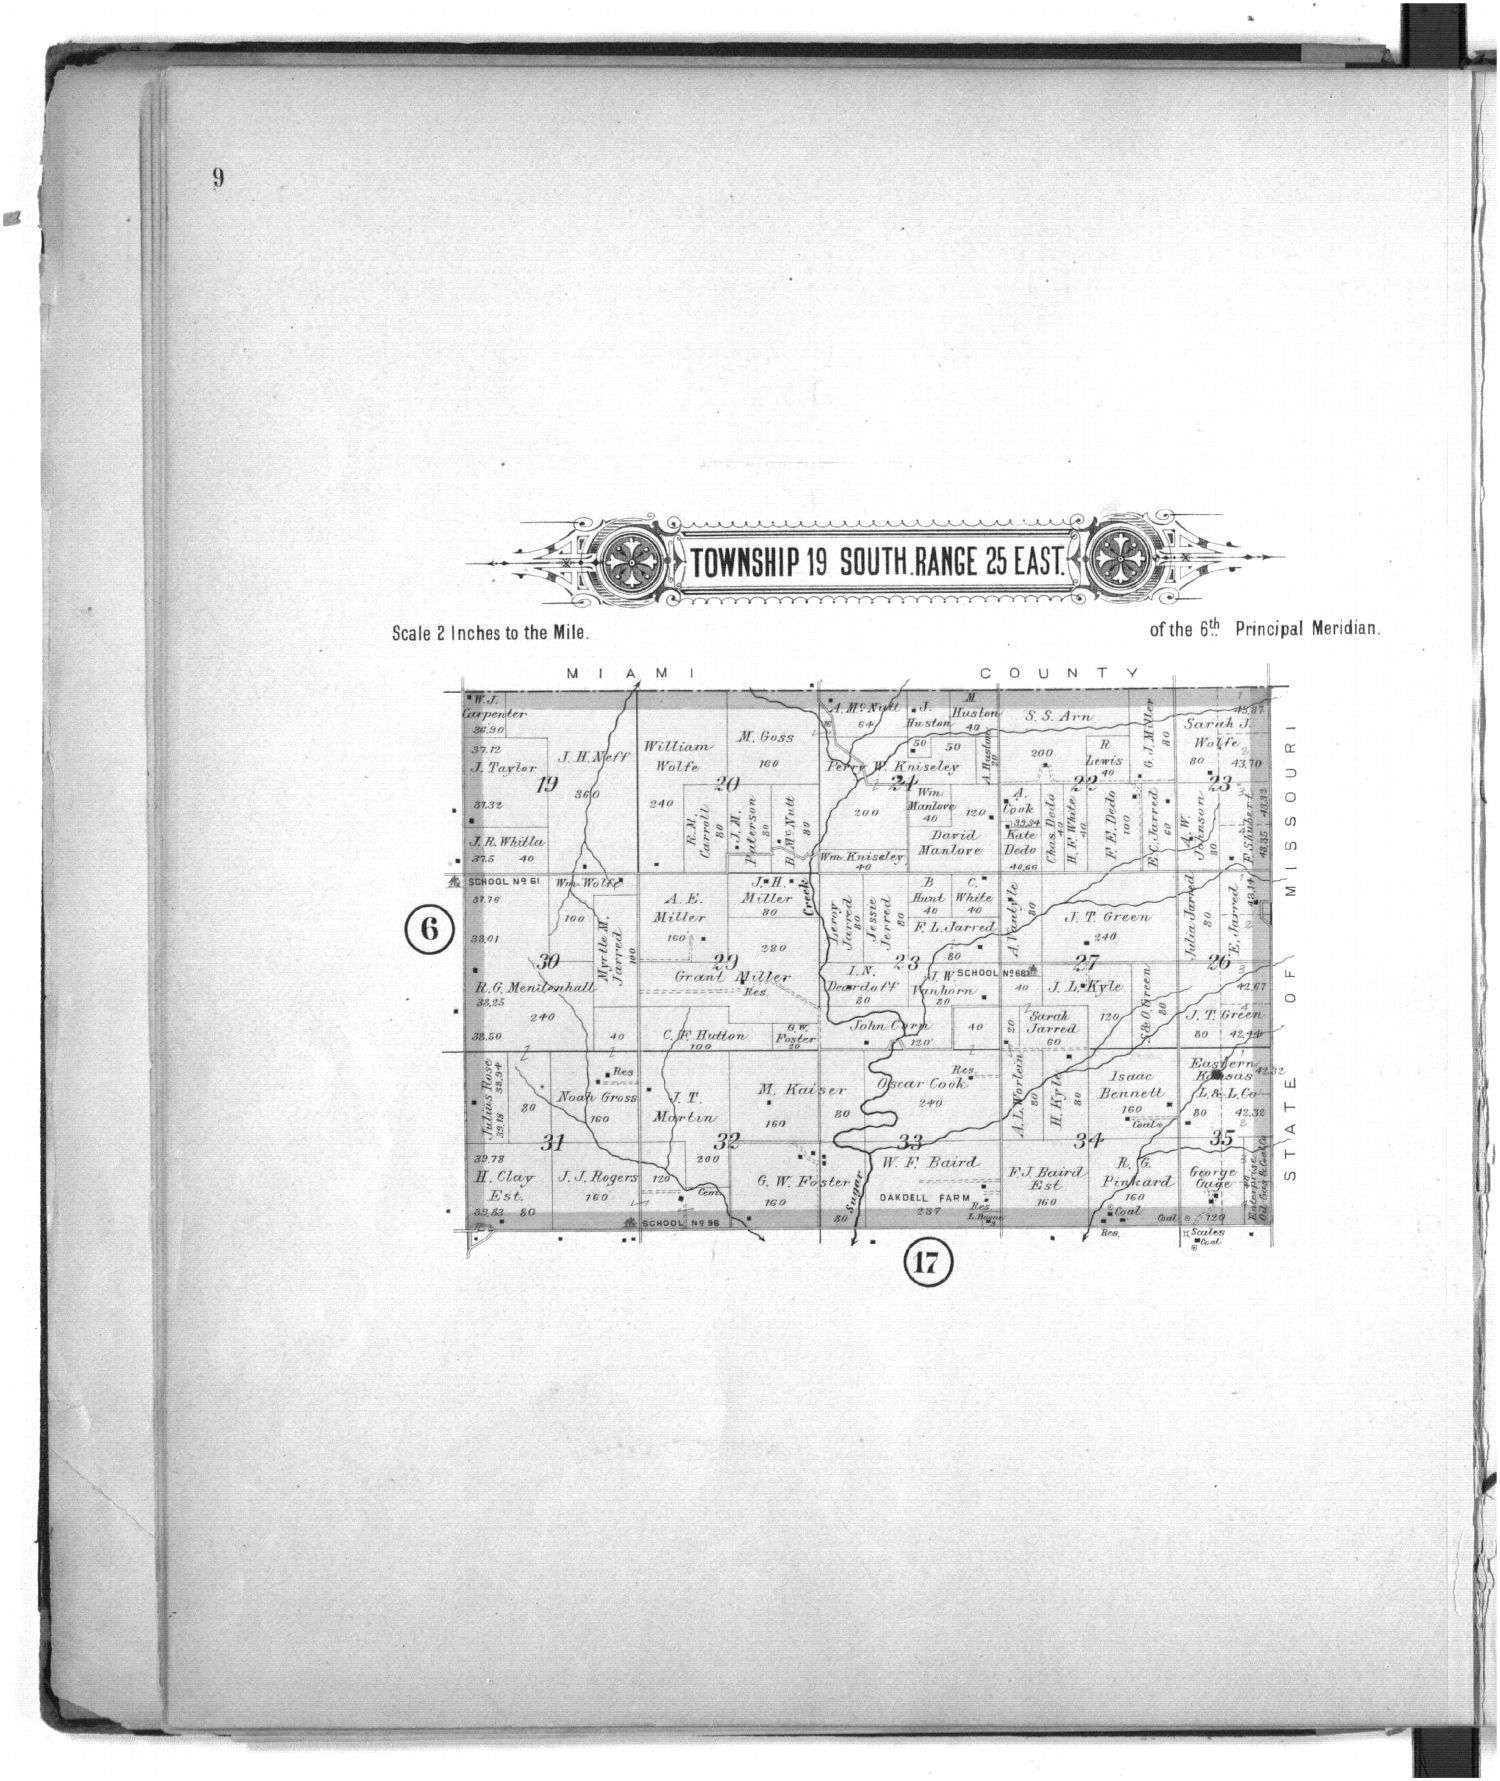 Plat book of Linn County, Kansas - 9